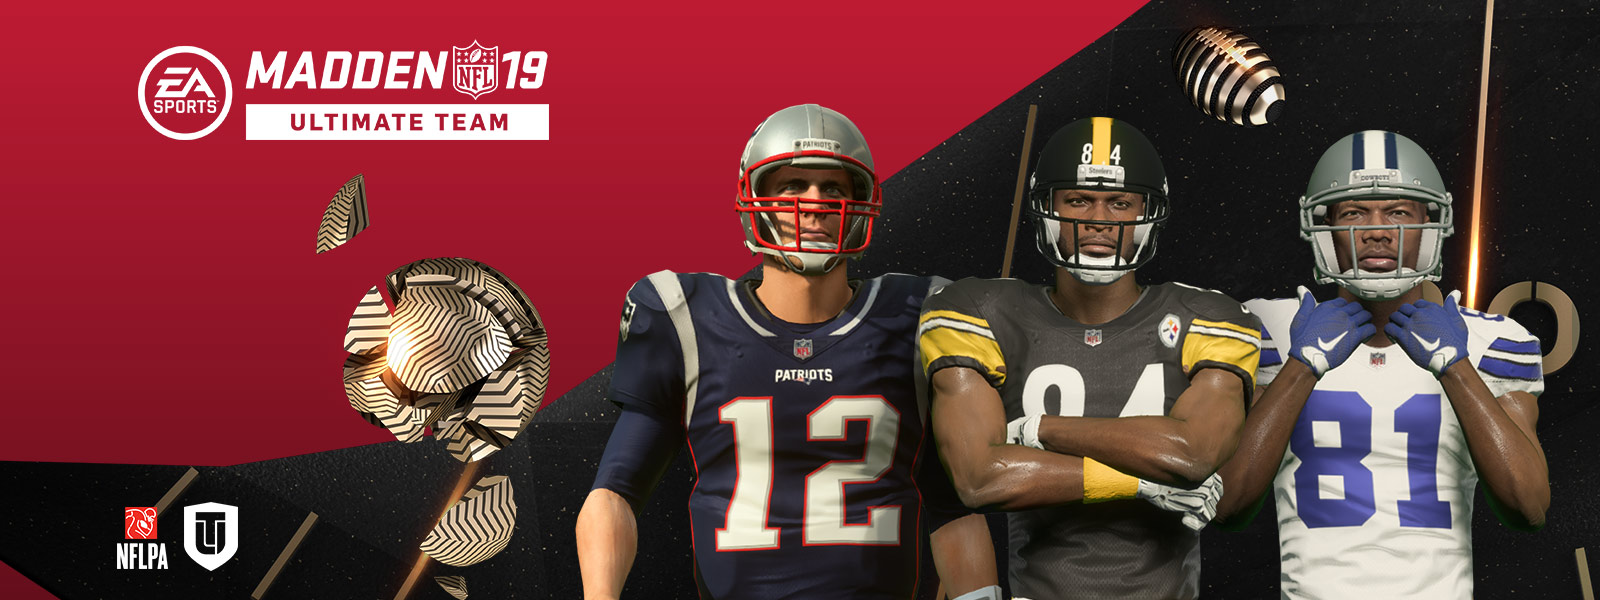 Madden NFL 19 Ultimate Team, μπροστινή όψη των Tom Brady, Antonio Brown και Terrell Owens